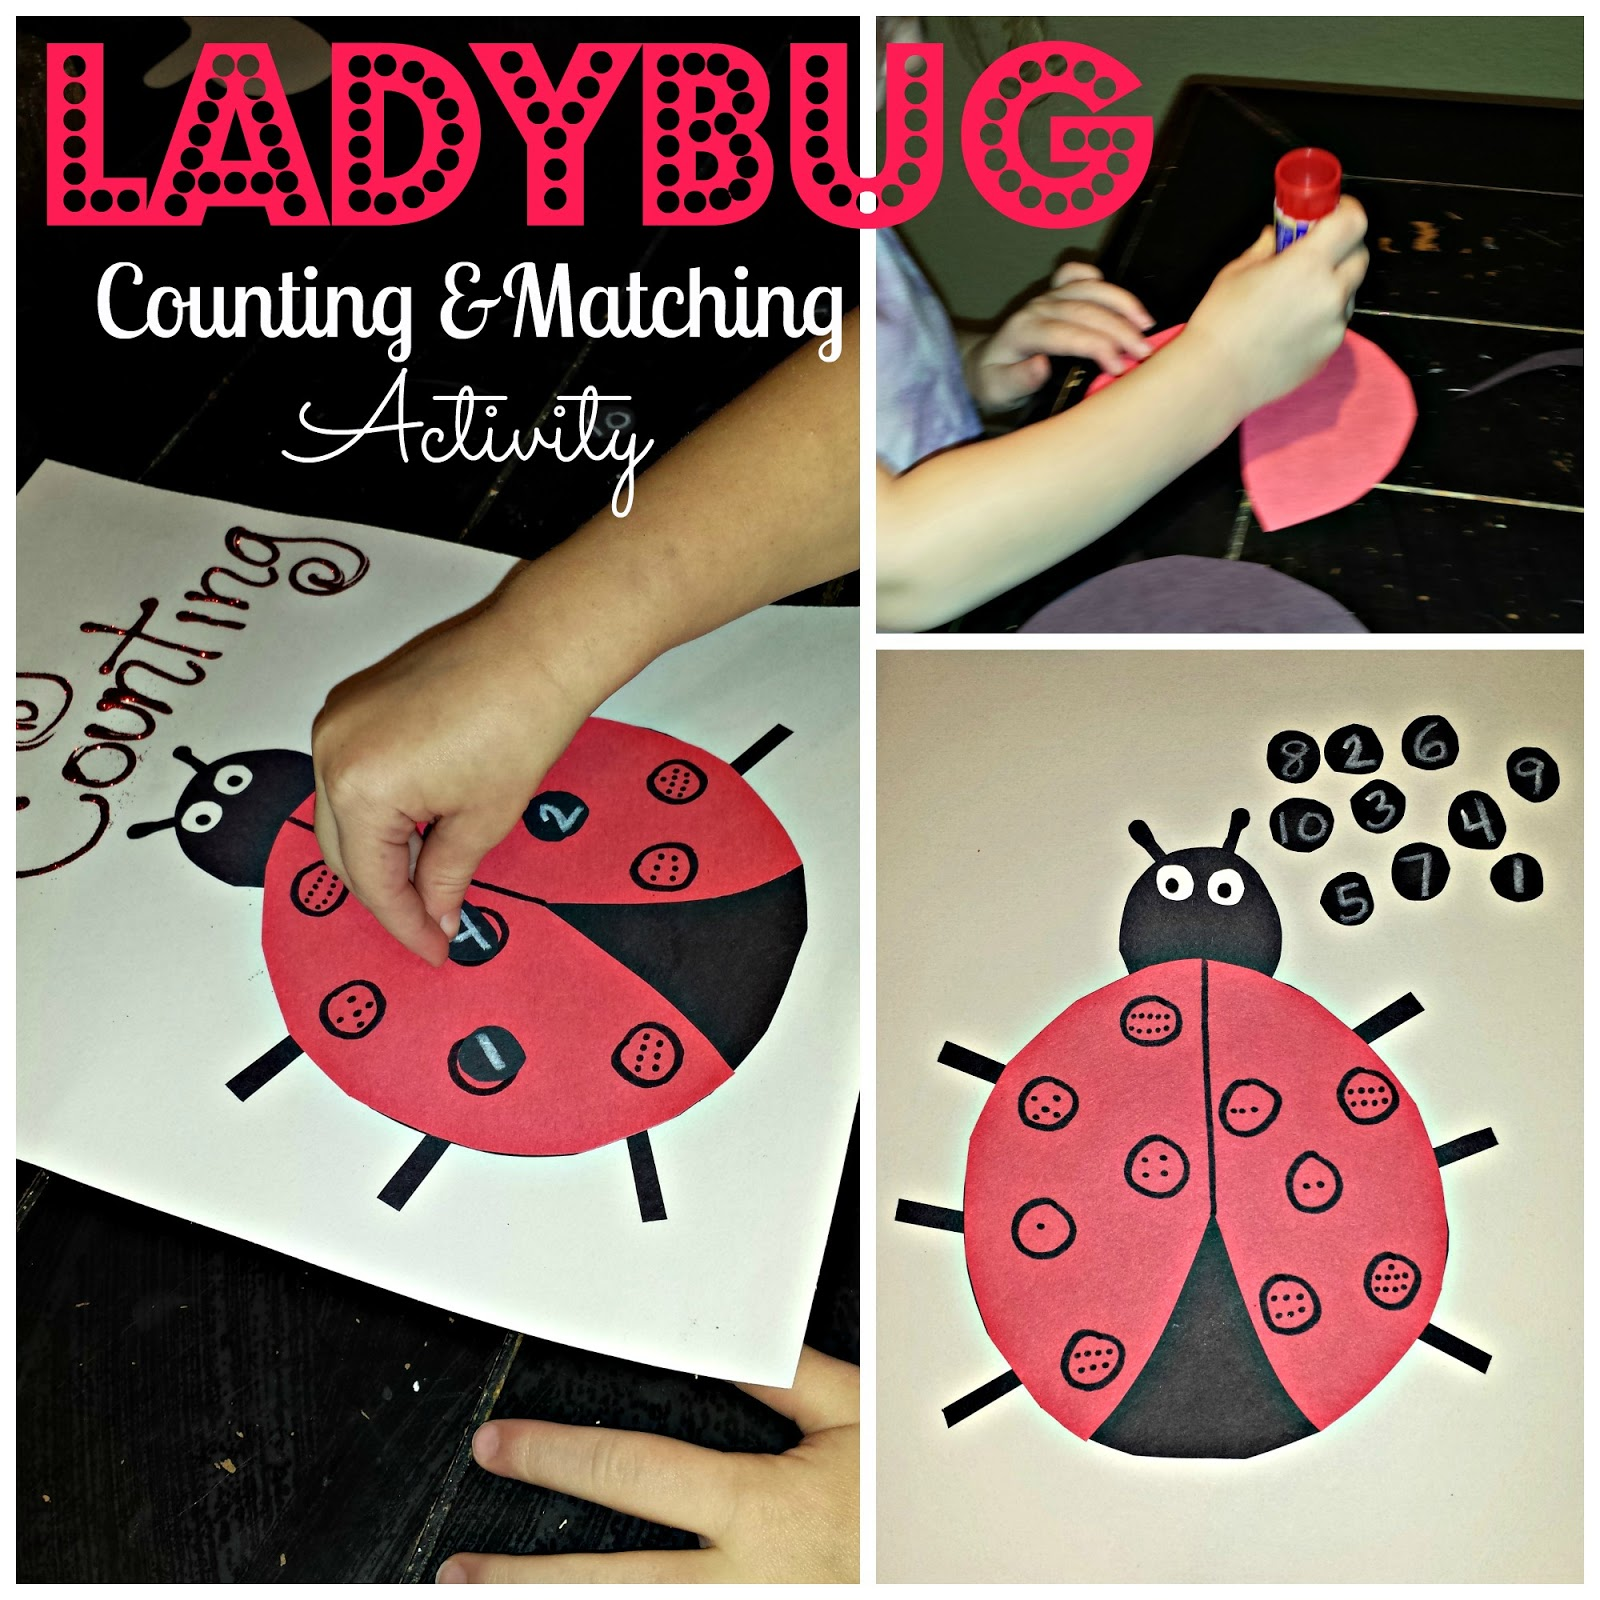 Diy Ladybug Number Counting And Matching Activitycraft For Kids pertaining to Art And Craft Ideas With Numbers